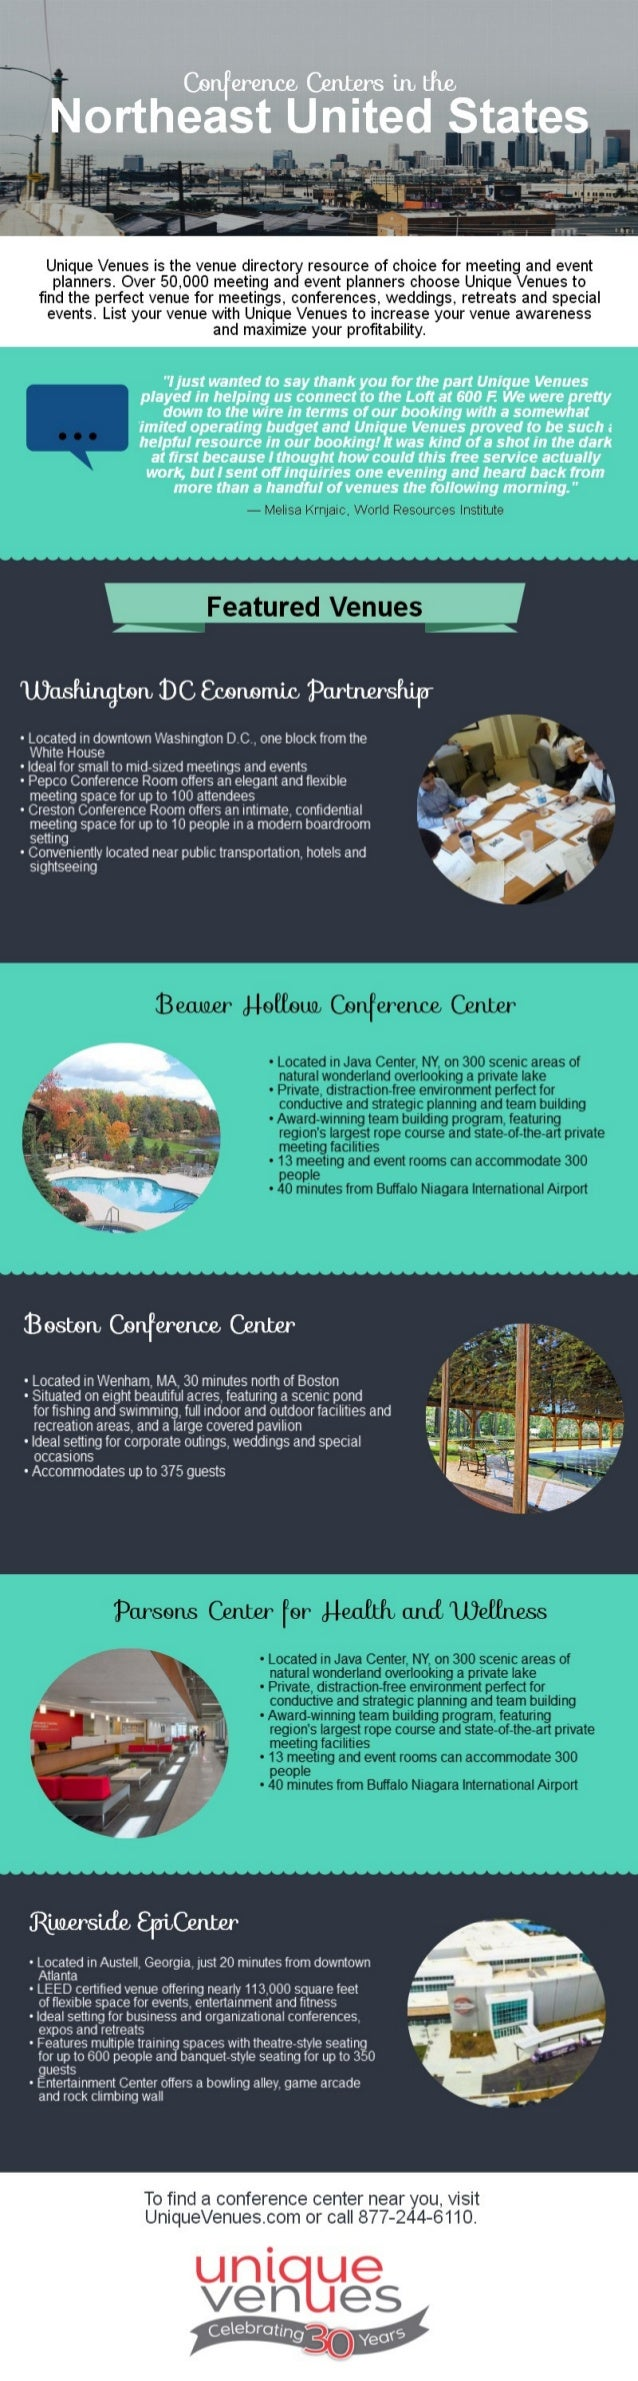 Conference Centers in the Northeast United States